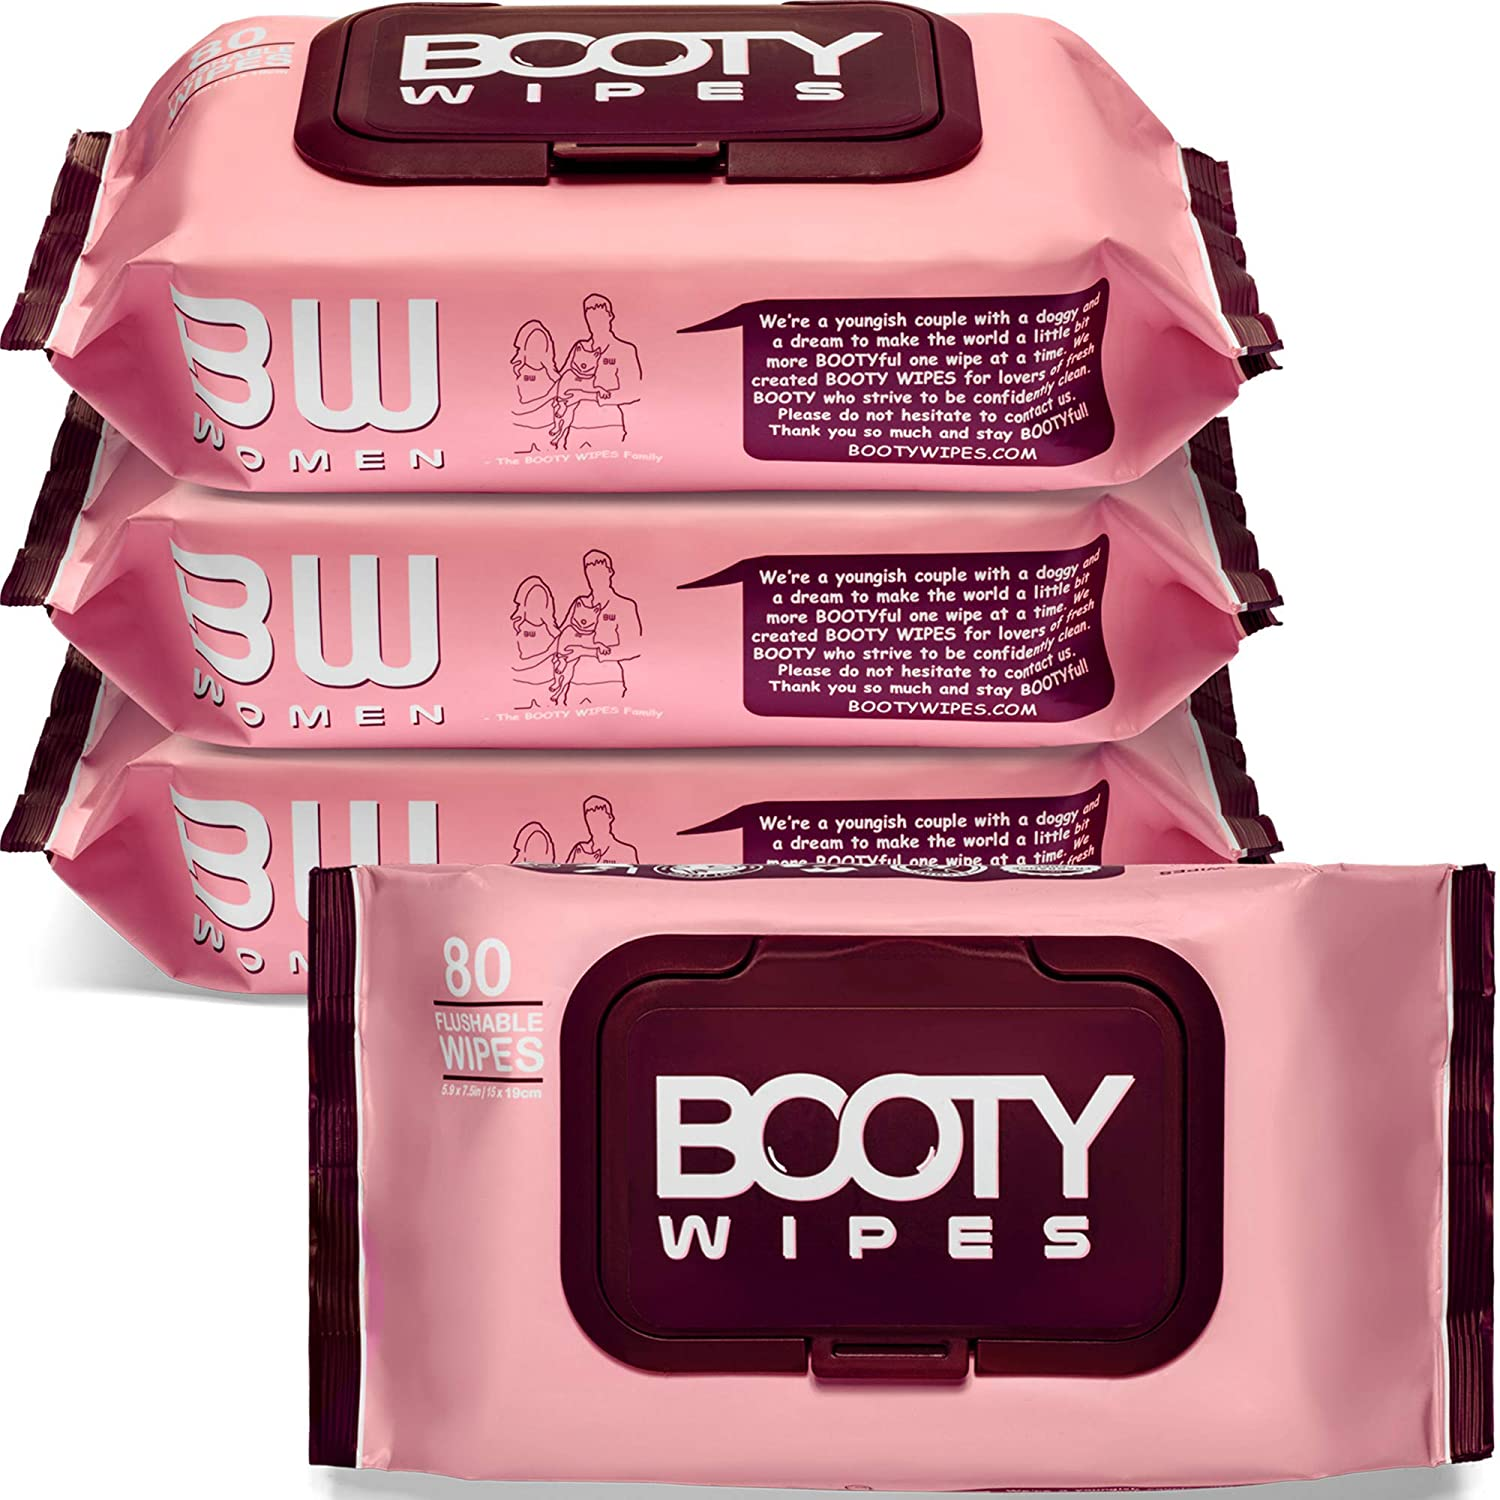 BOOTY WIPES for Women - 320 Flushable Wet Wipes for Adults, Feminine Wipes, pH Balanced (320 Wipes Total - 4 Flip-Top Packs of 80) Wipes for Women, Infused with Vitamin-E & Aloe